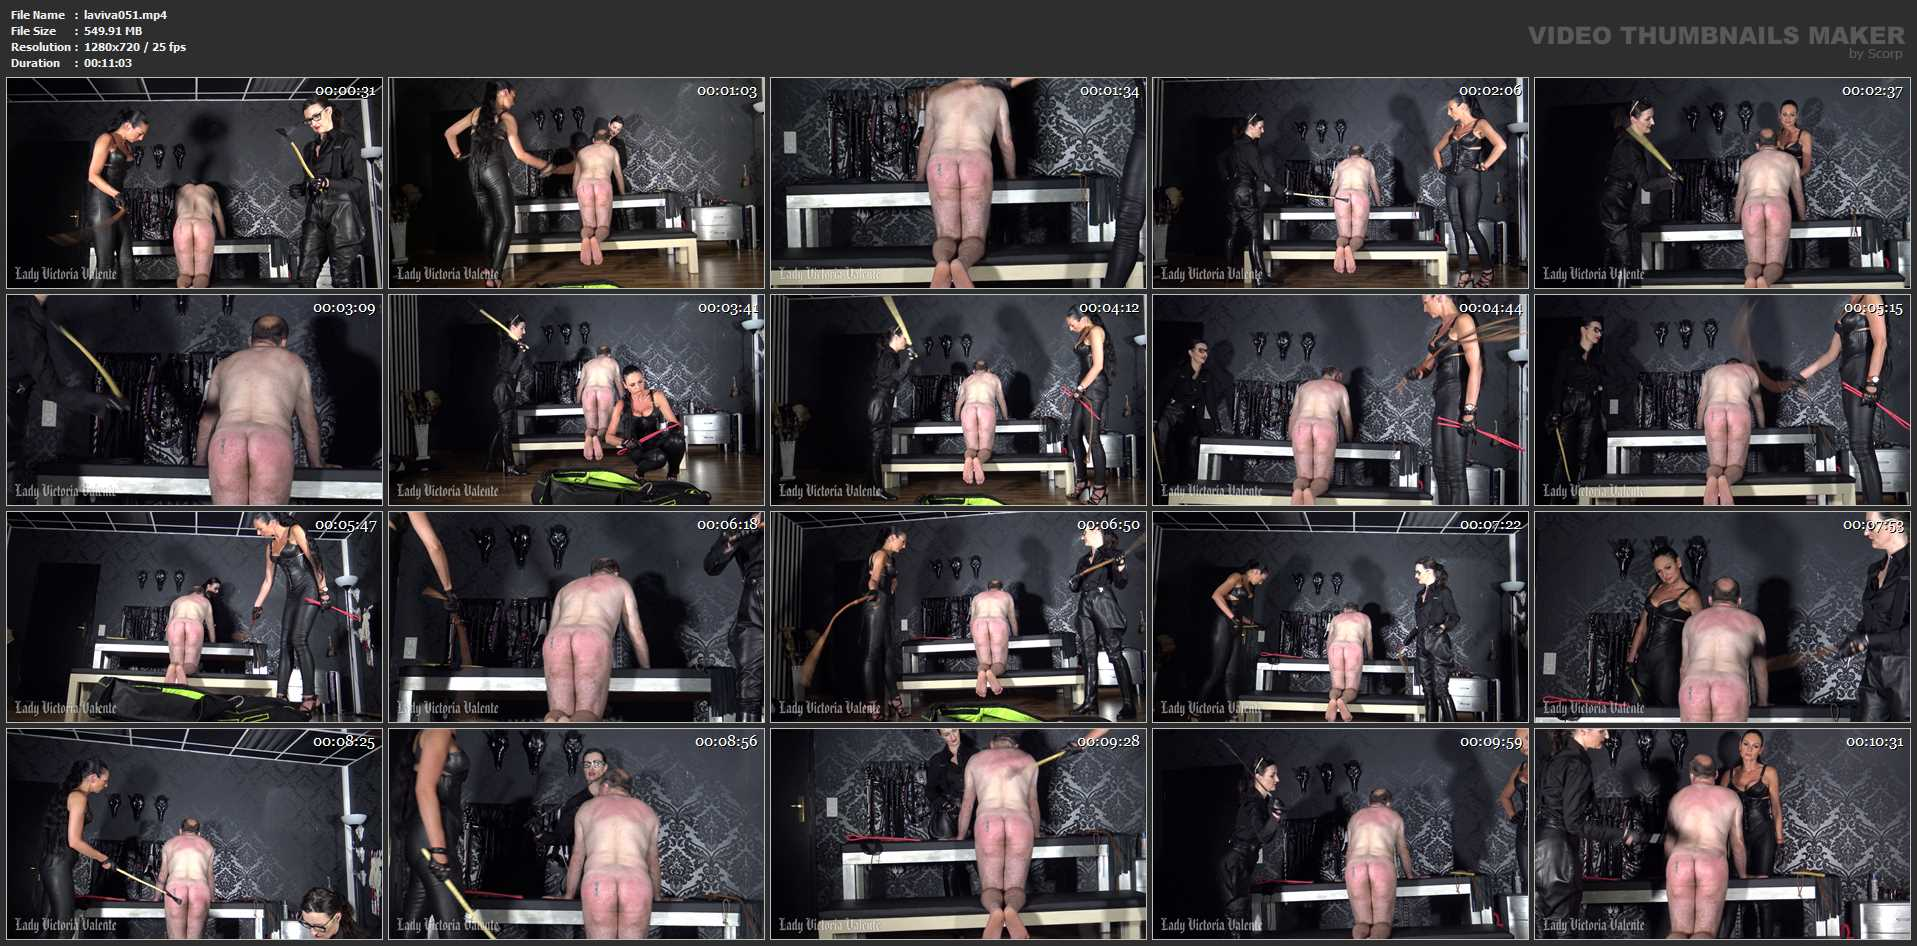 Lady Victoria Valente In Scene: The whip seller Part 3 - CLIPS4SALE / LADYVICTORIAVALENTE - HD/720p/MP4